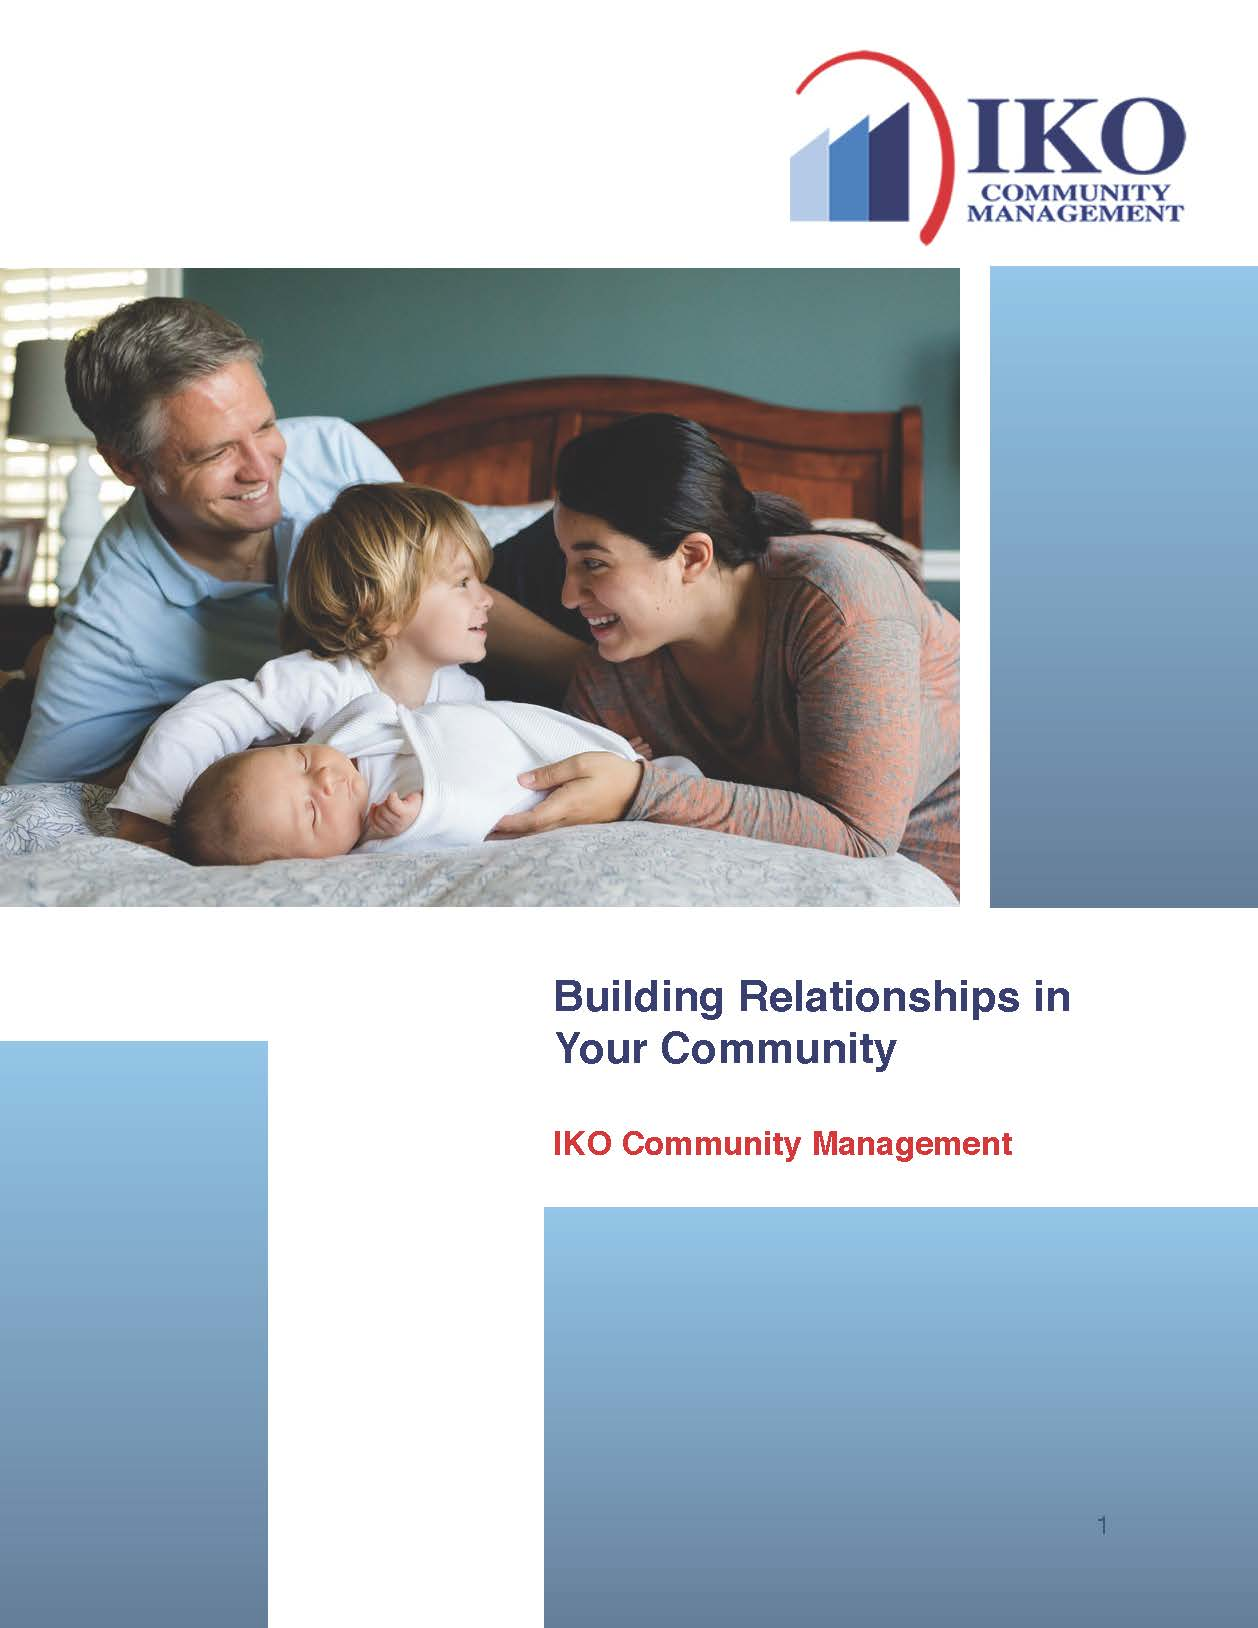 Building-Relationships-in-Your-Community-1_Page_01.jpg